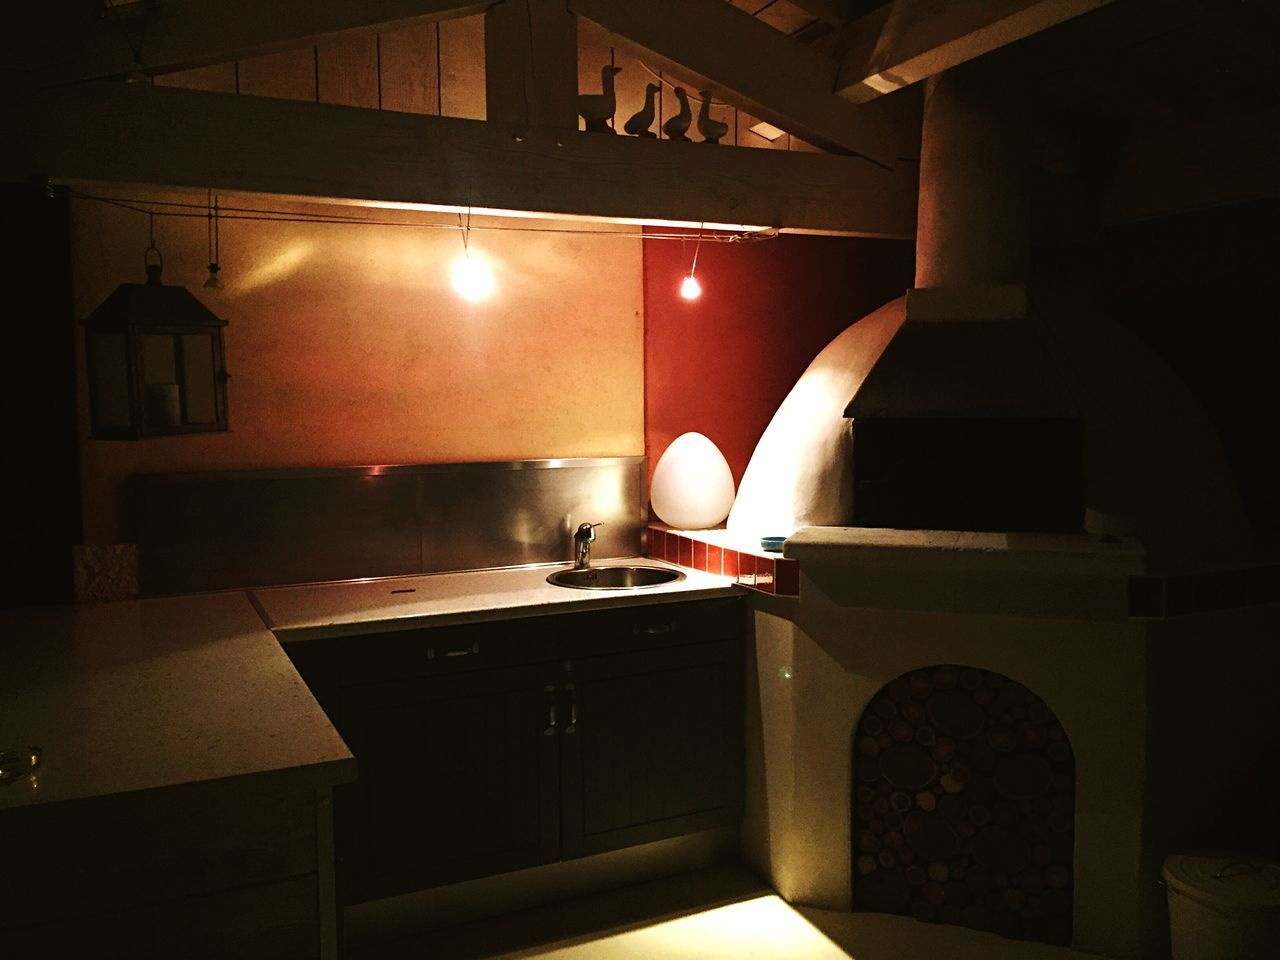 Cuisine extérieur- Kitchen Pizza Kitchen Outside Outside Oven Pizza Oven Photography Ambiance Overnight Night Nightphotography Night Lights Light Frams Duck Atmosphere Relax Atmospheric Mood My Favorite Place